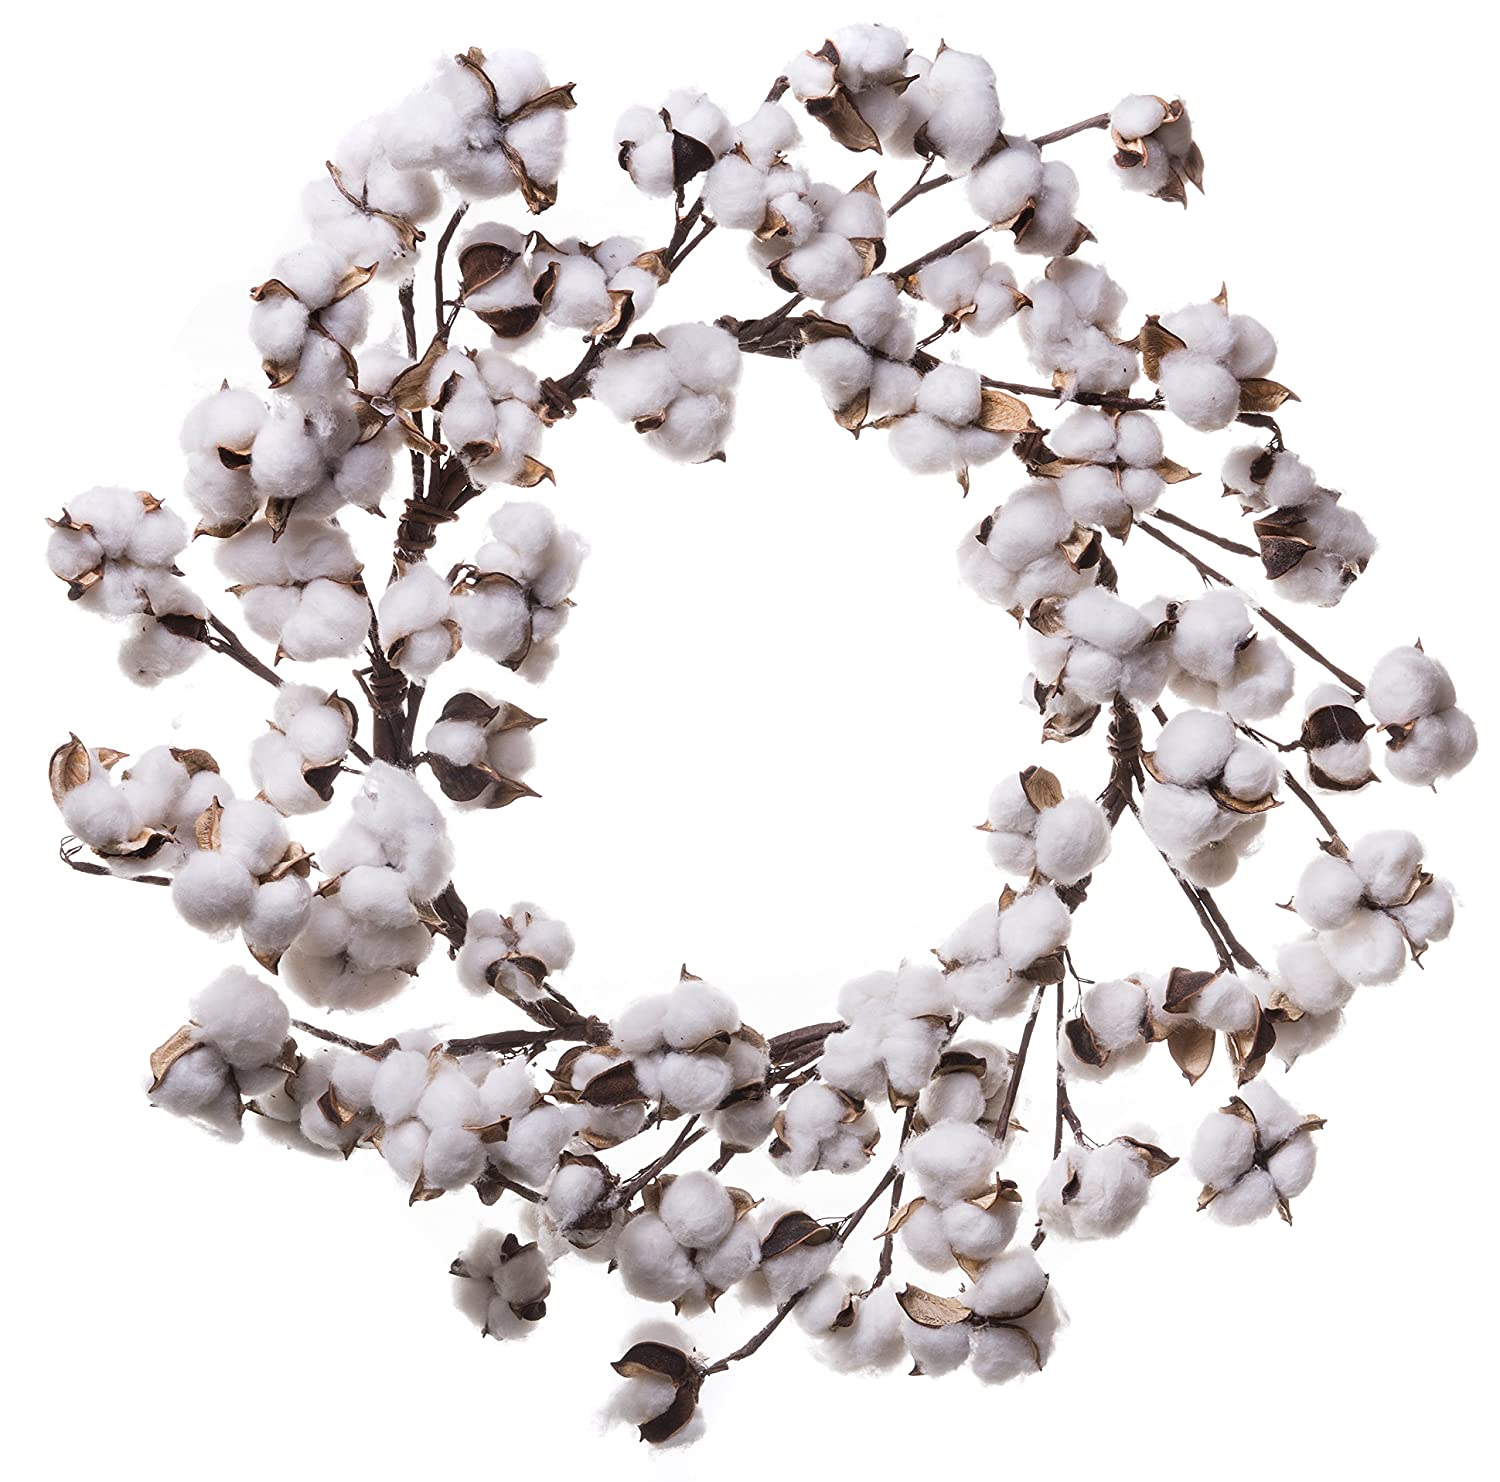 Red Co. Farmhouse Full White Fluffy Cotton Boll Wreath - Home Decor for Front Door -22 Inches WR1504